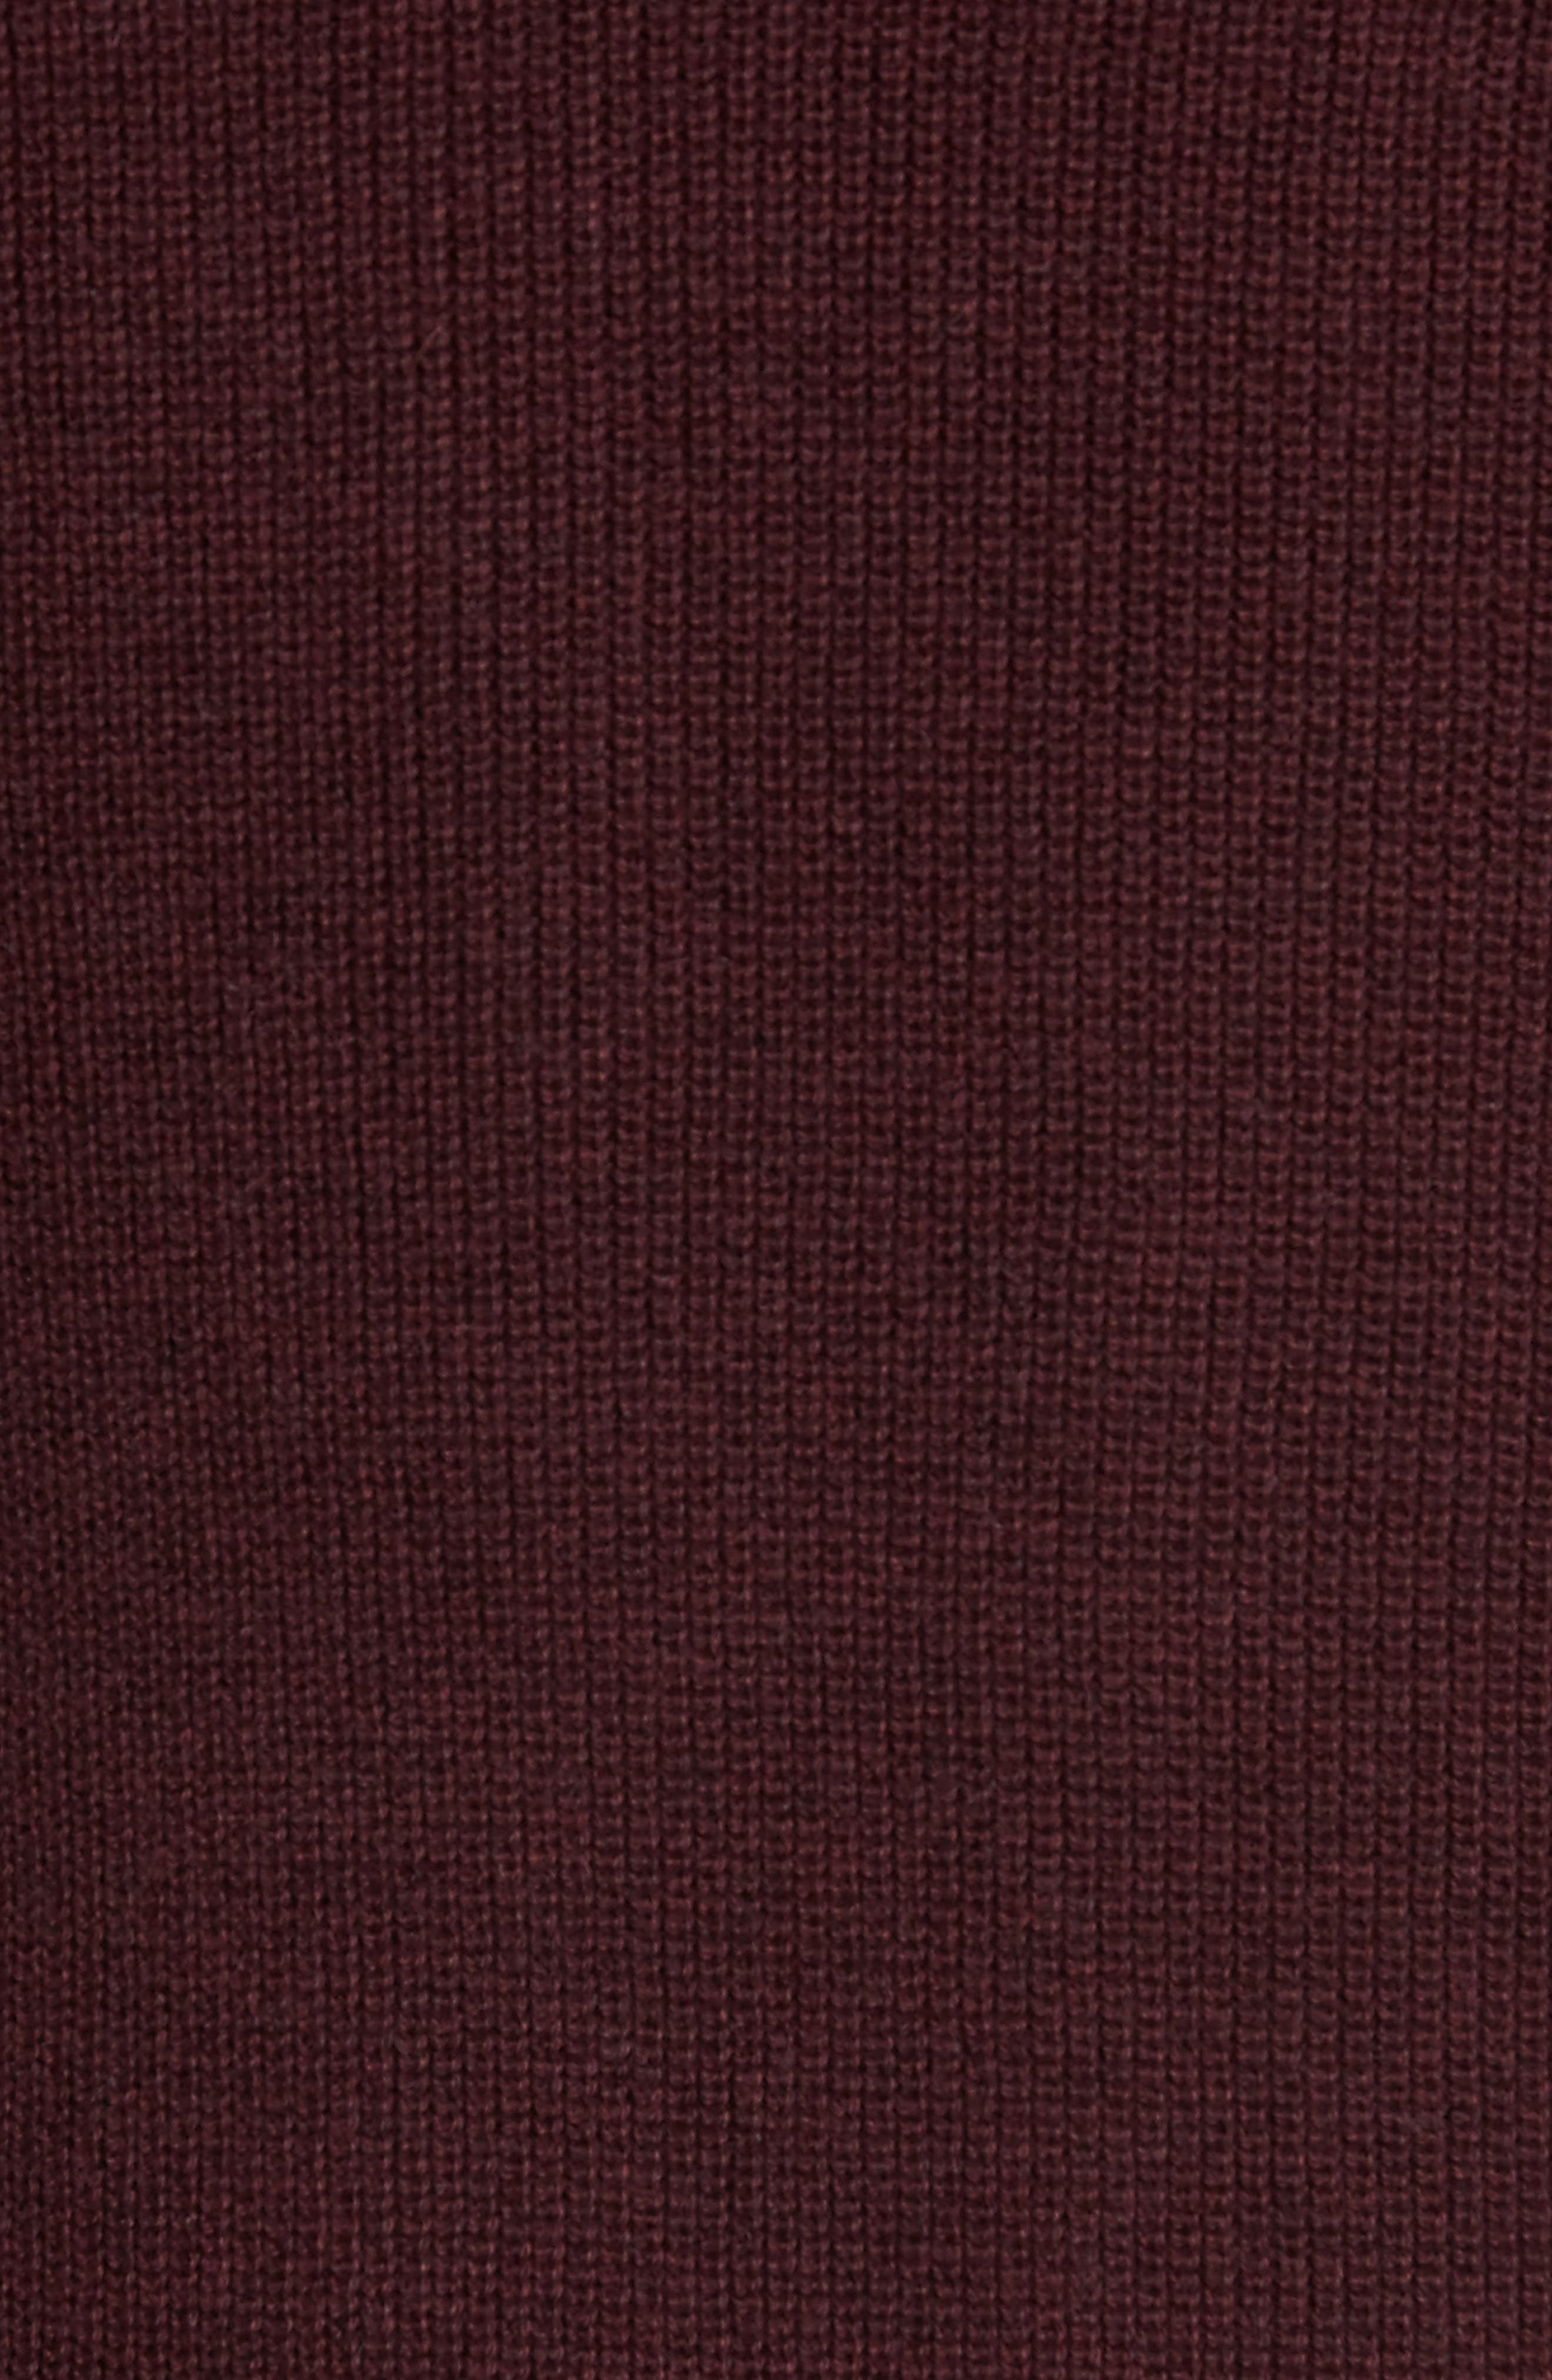 Cotton & Cashmere Henley Sweater,                             Alternate thumbnail 5, color,                             Burgundy Fudge Heather